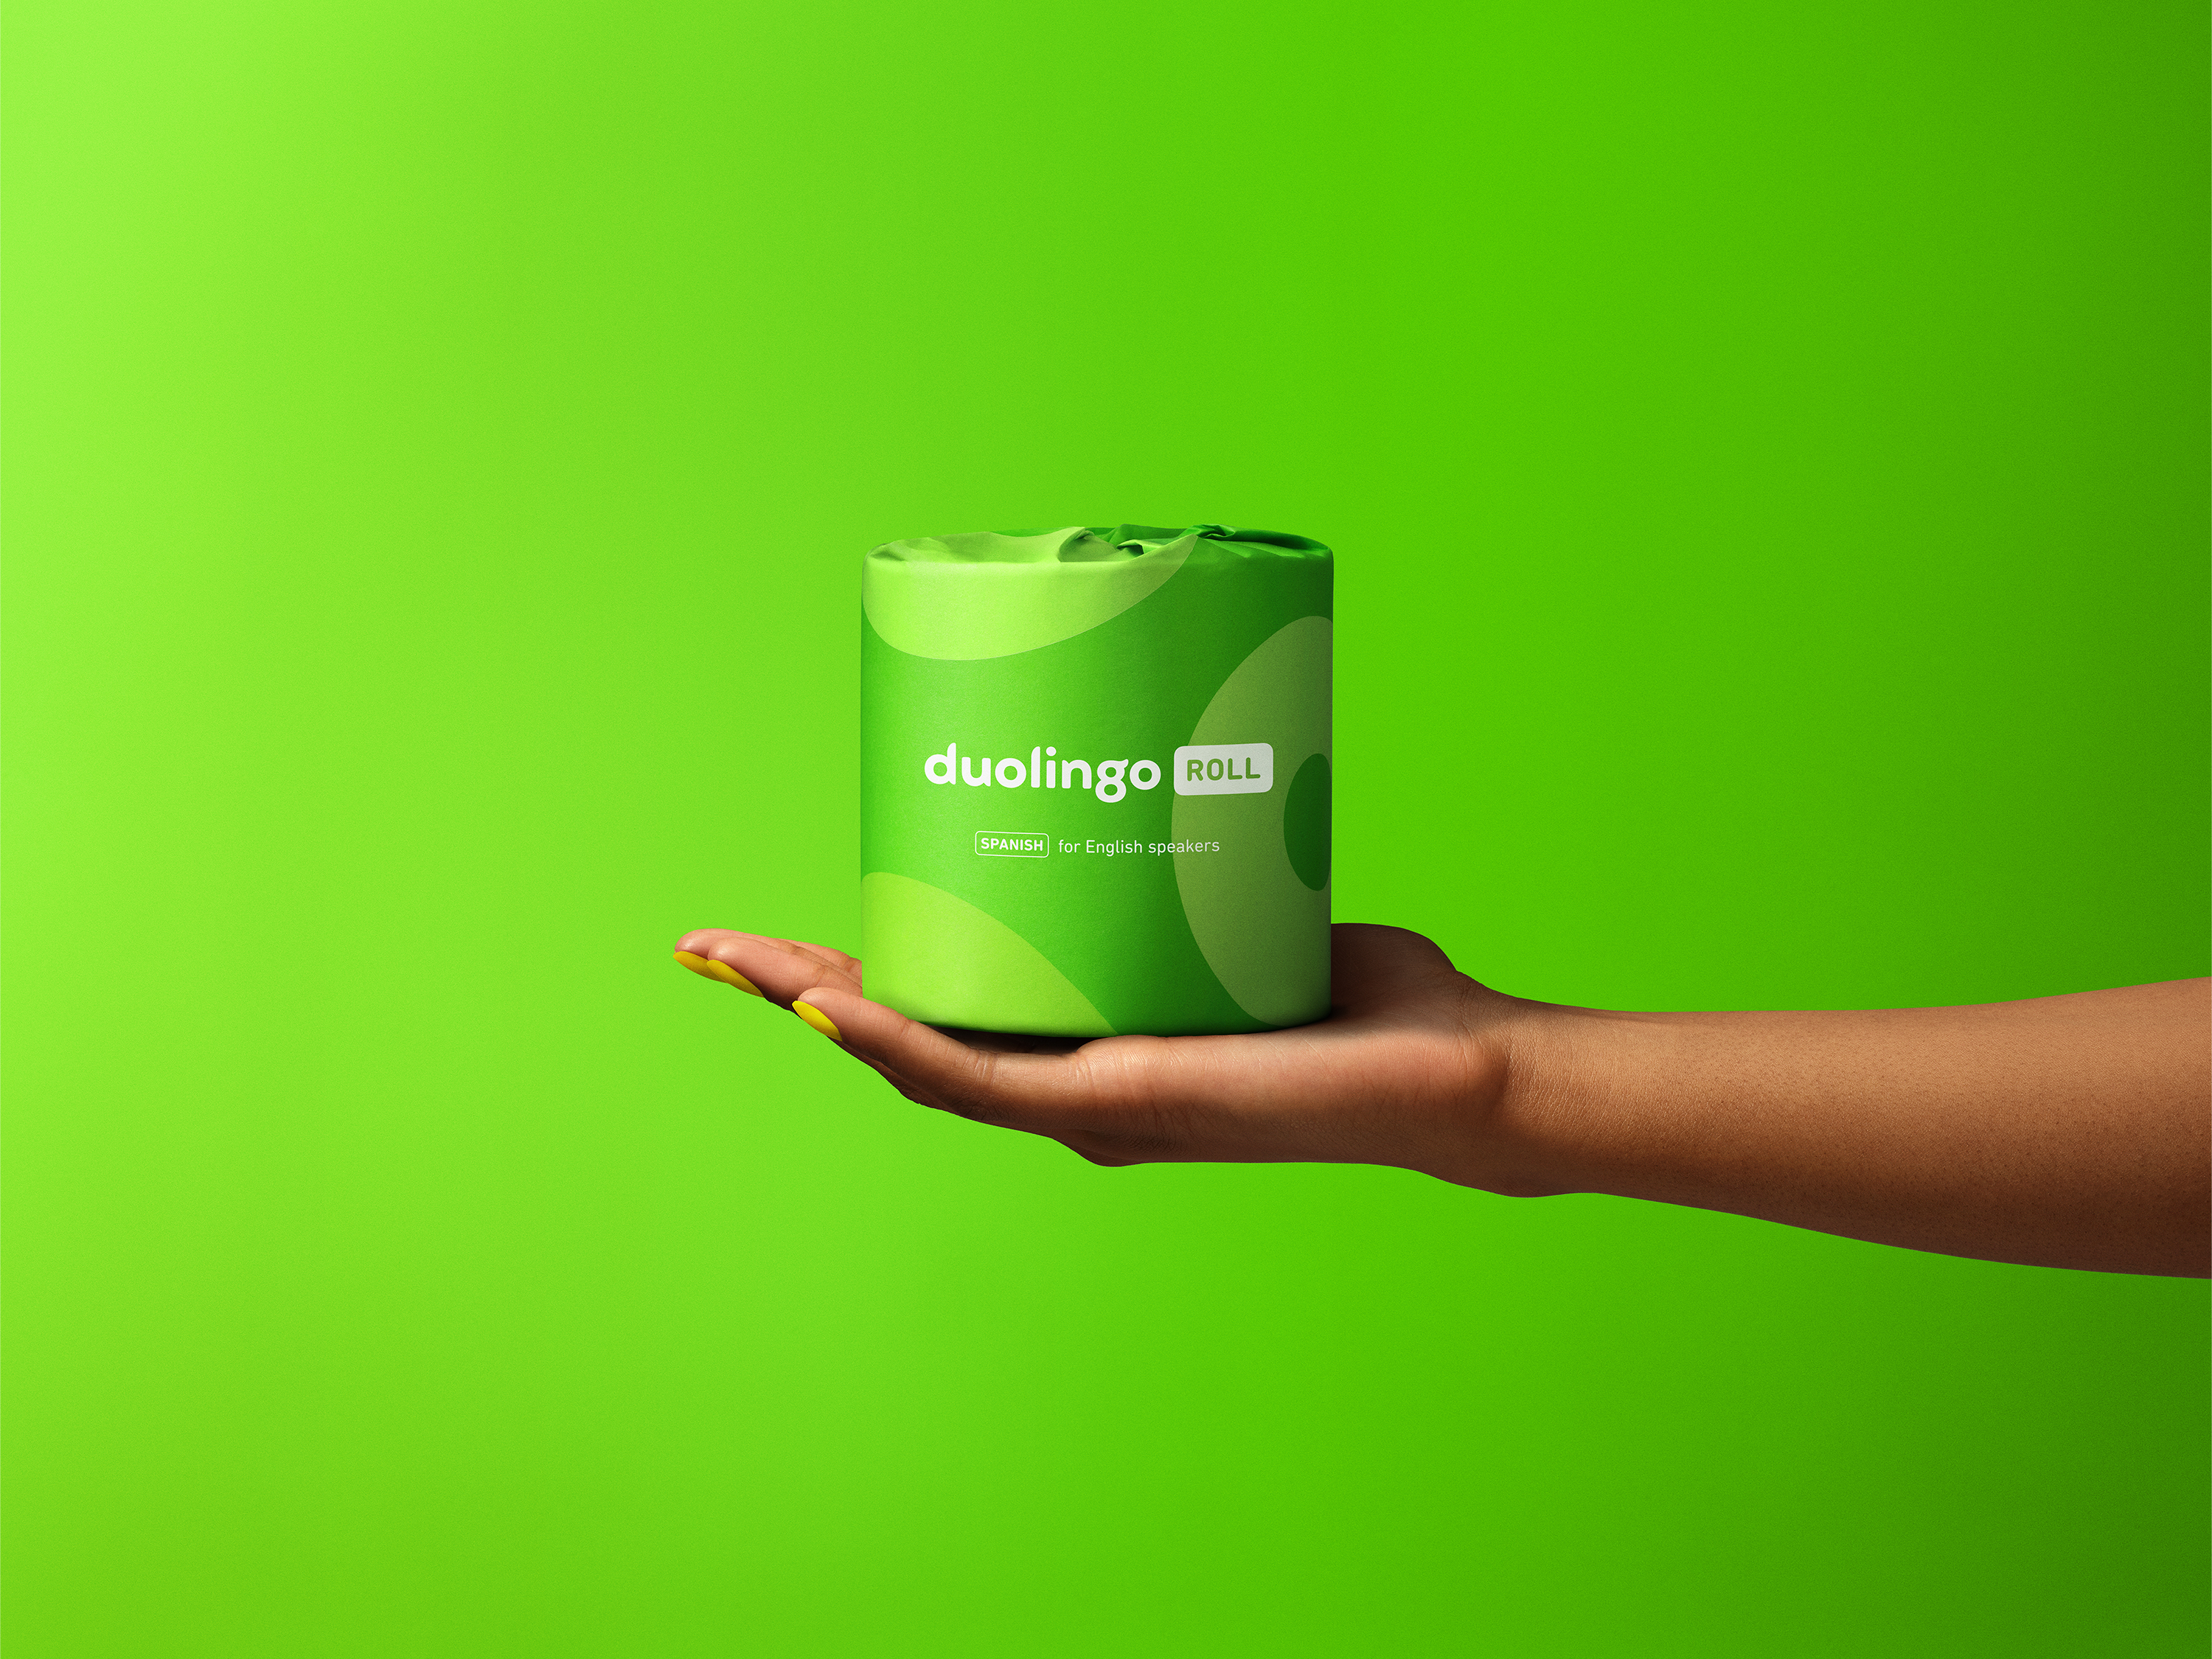 Duolingo Roll in-hand for English speakers